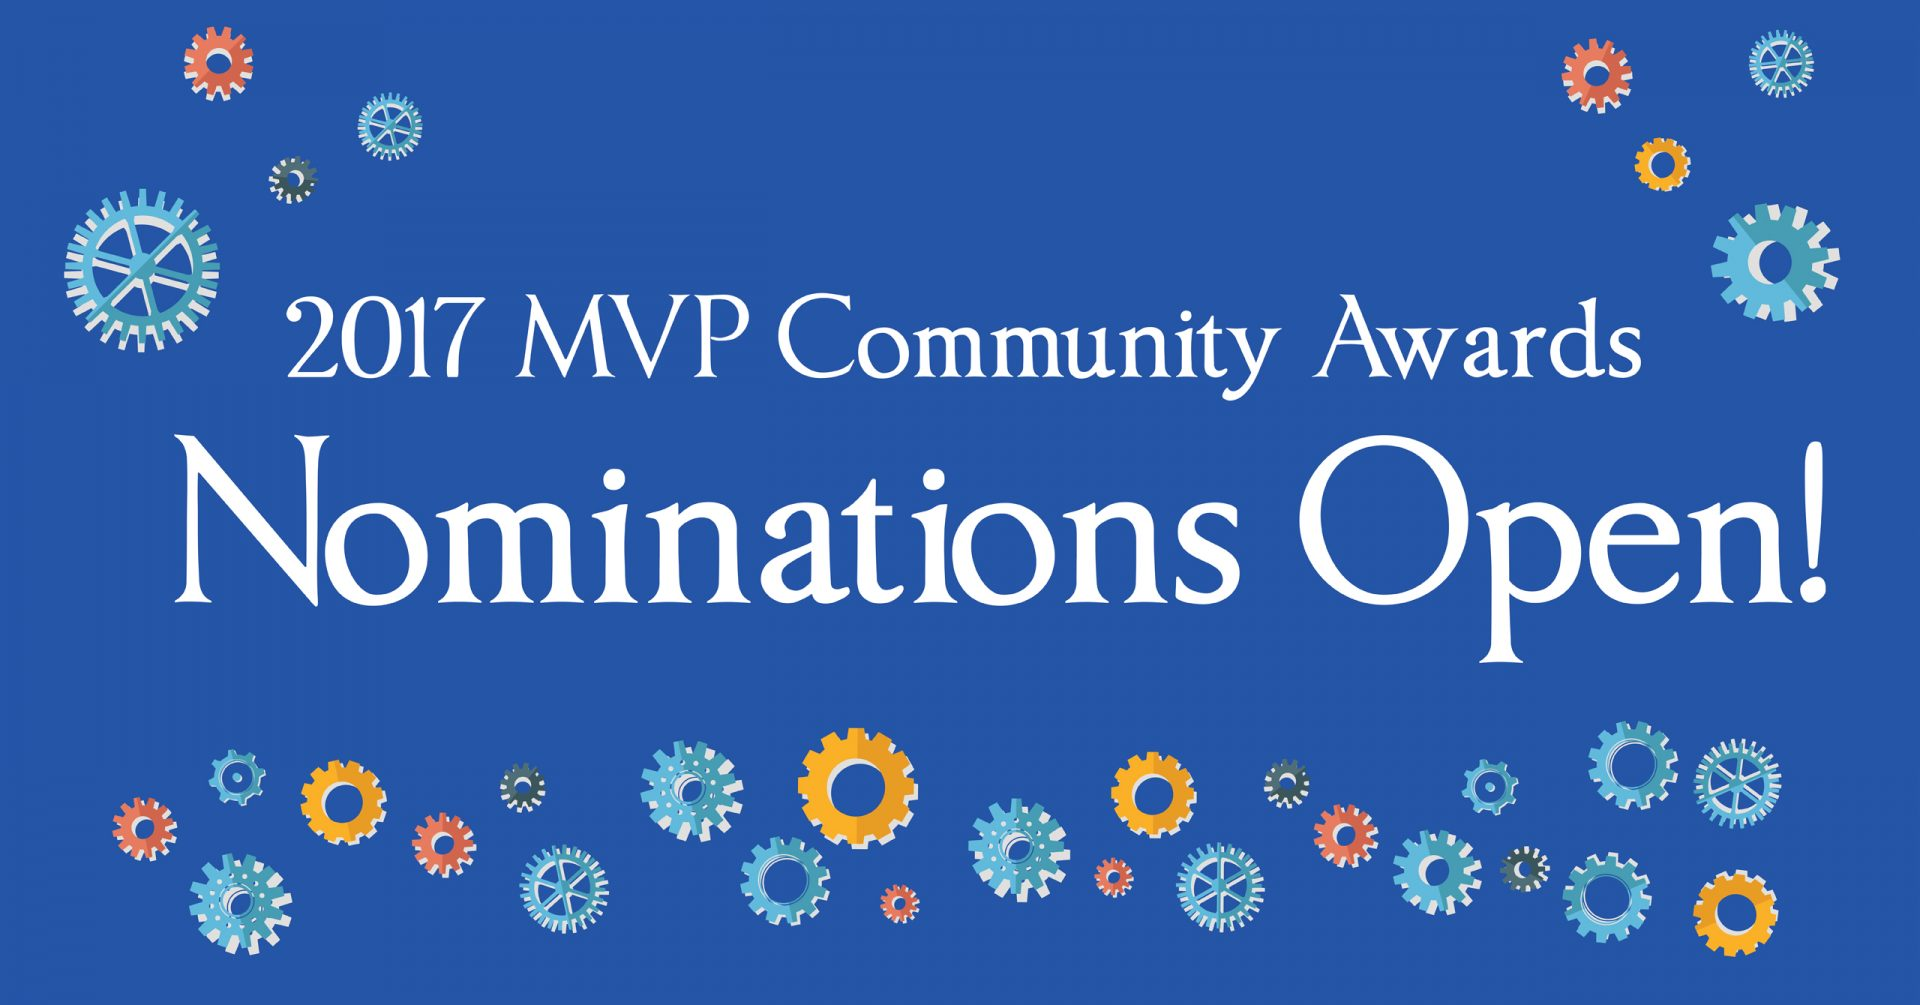 Blue Background with colorful cogs and white text reading: 2017 MVP Community Awards Nominations Open!